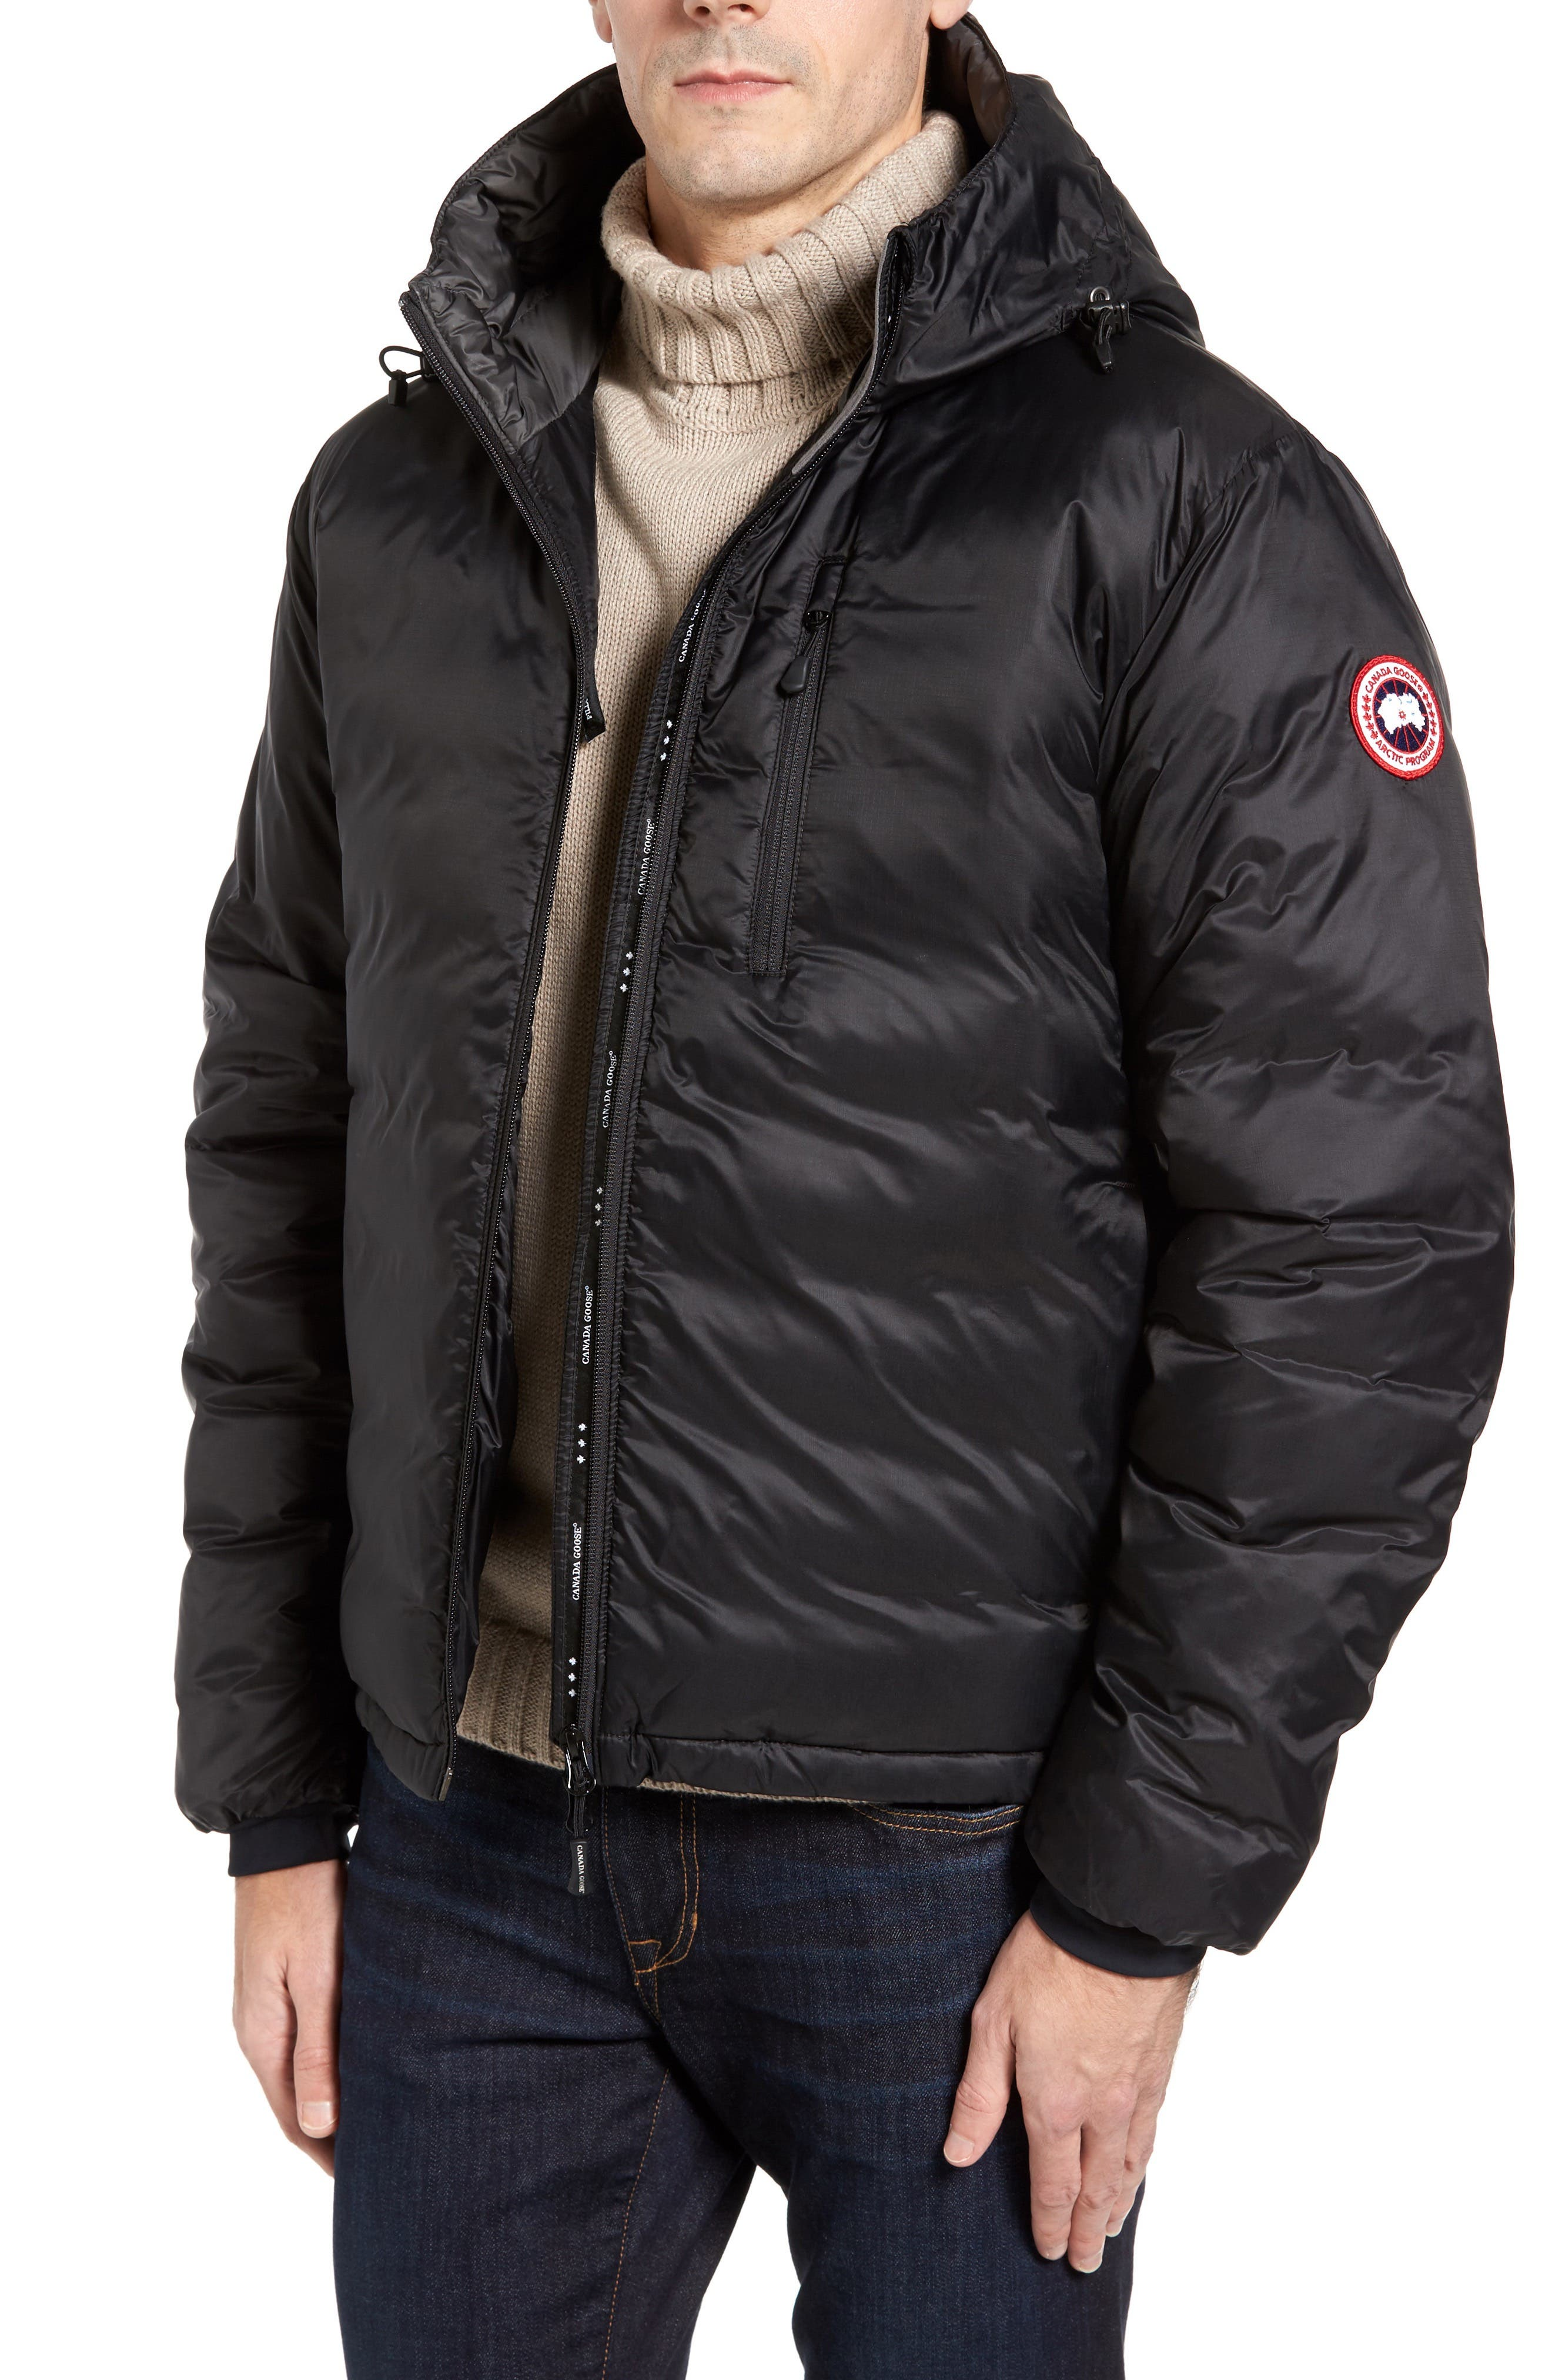 Lodge Packable Down Jacket,                             Main thumbnail 1, color,                             Black/ Black